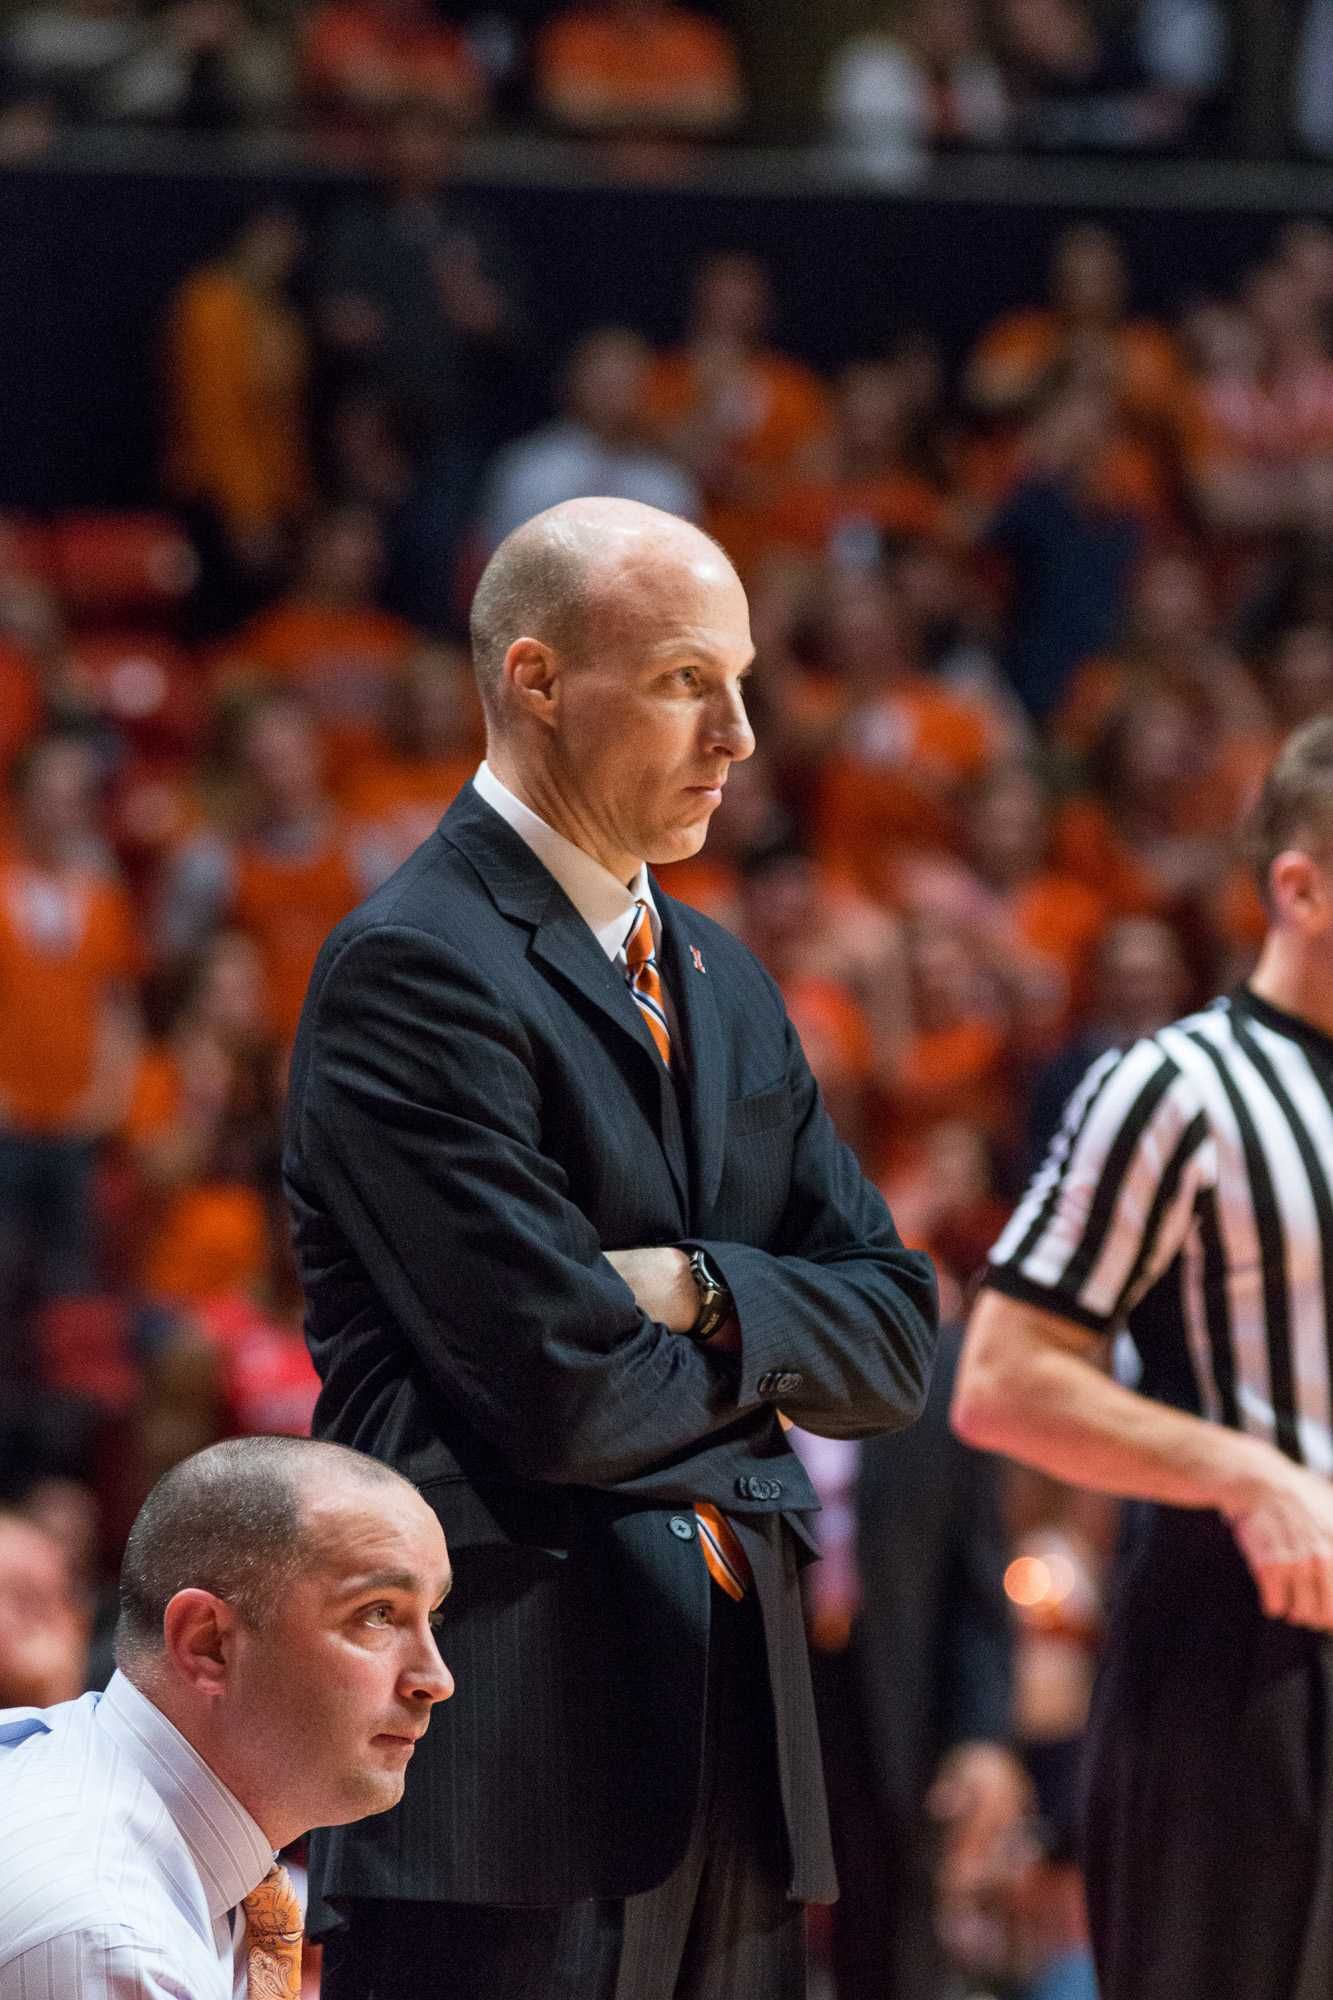 Illinois head coach John Groce watches his team from the sidelines during the game against Rutgers at the State Farm Center on February 17. The Illini won 82-66.